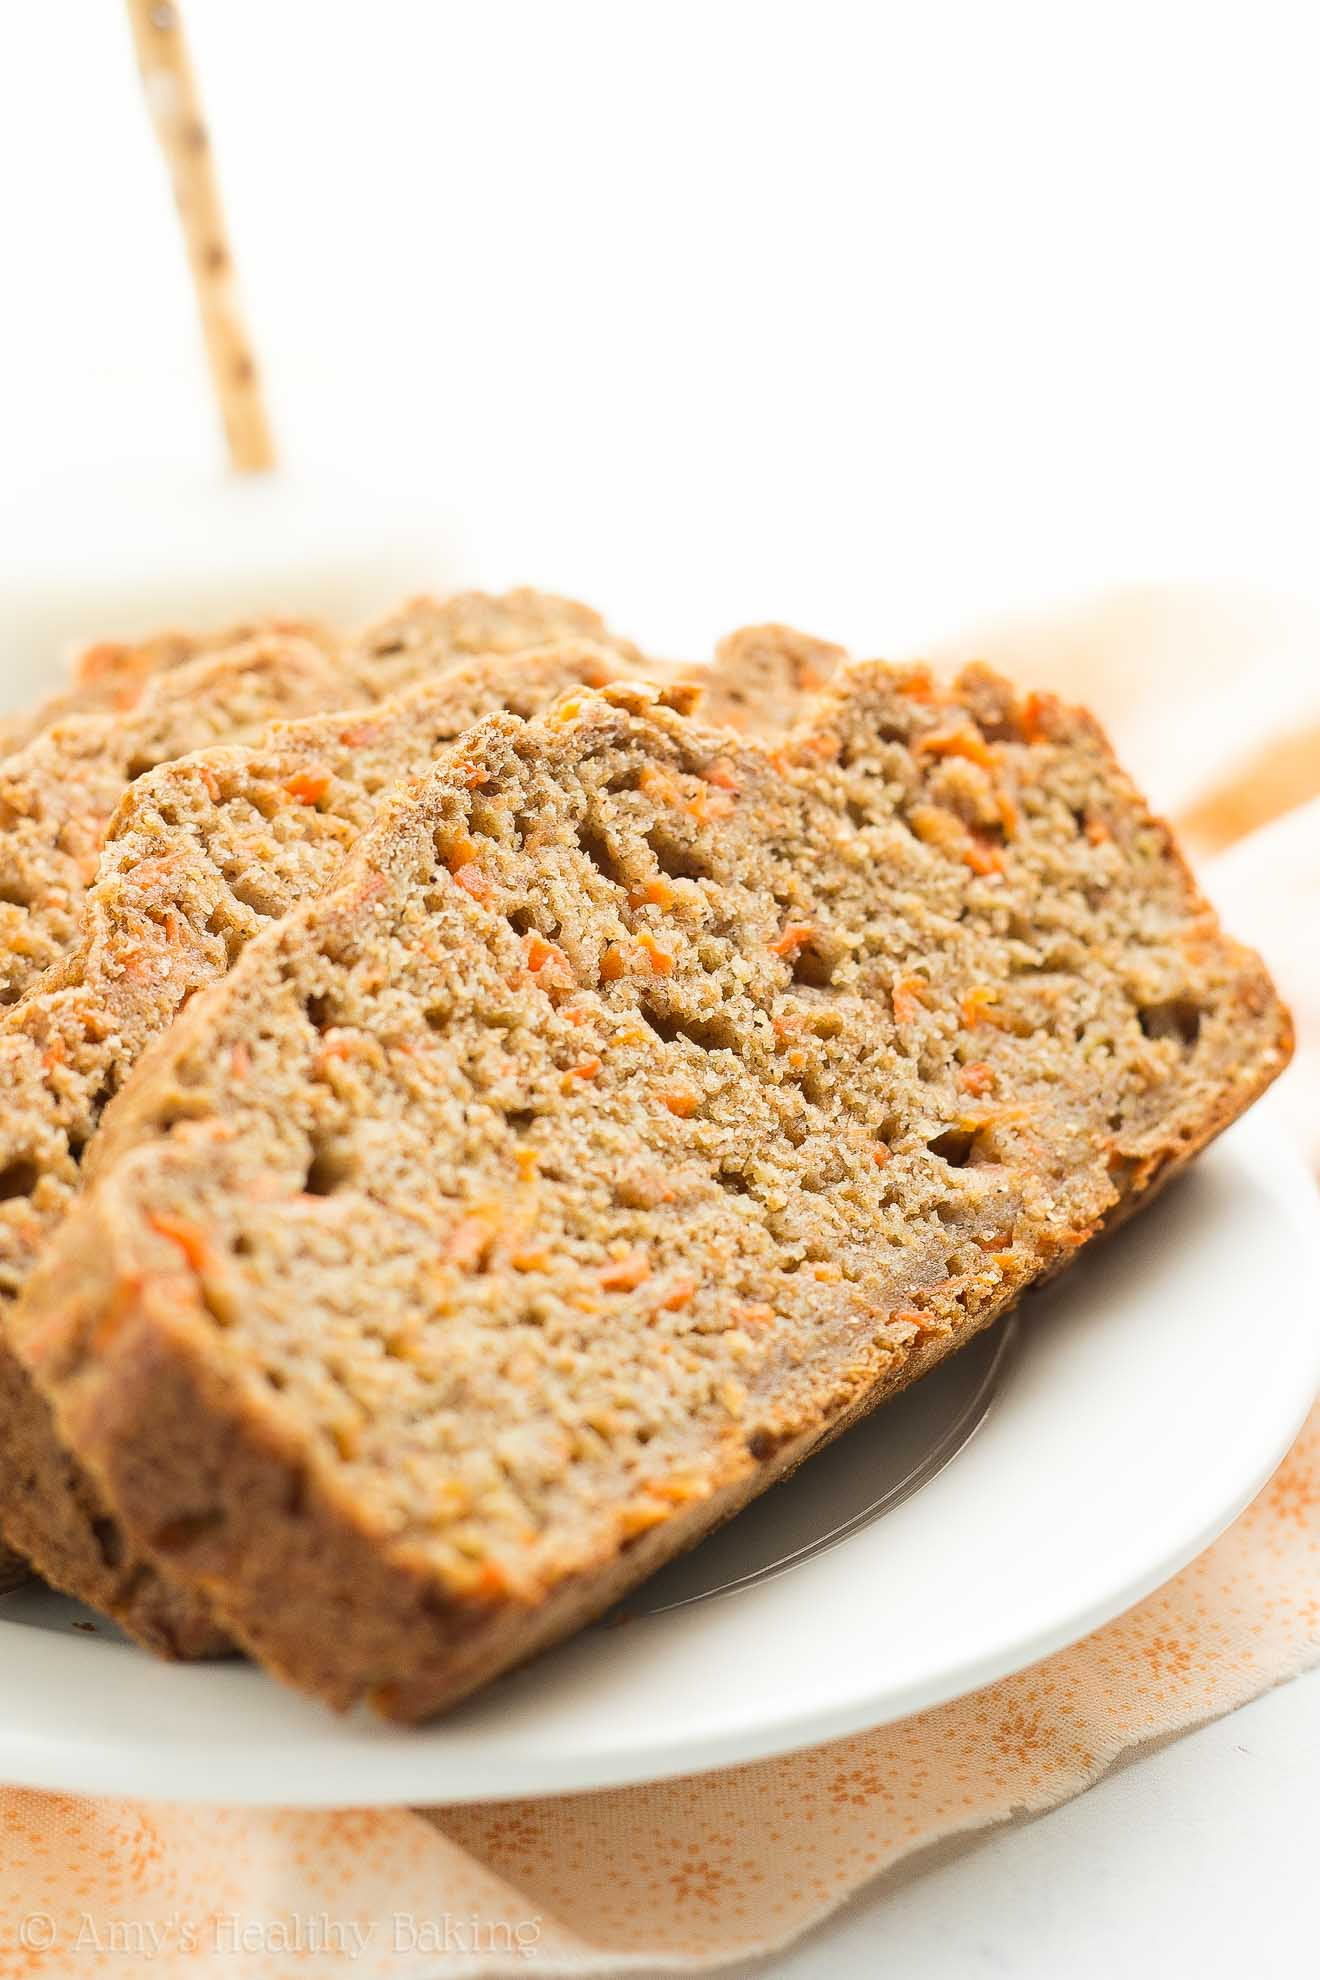 A plate of Healthy Carrot Cake Banana Bread slices